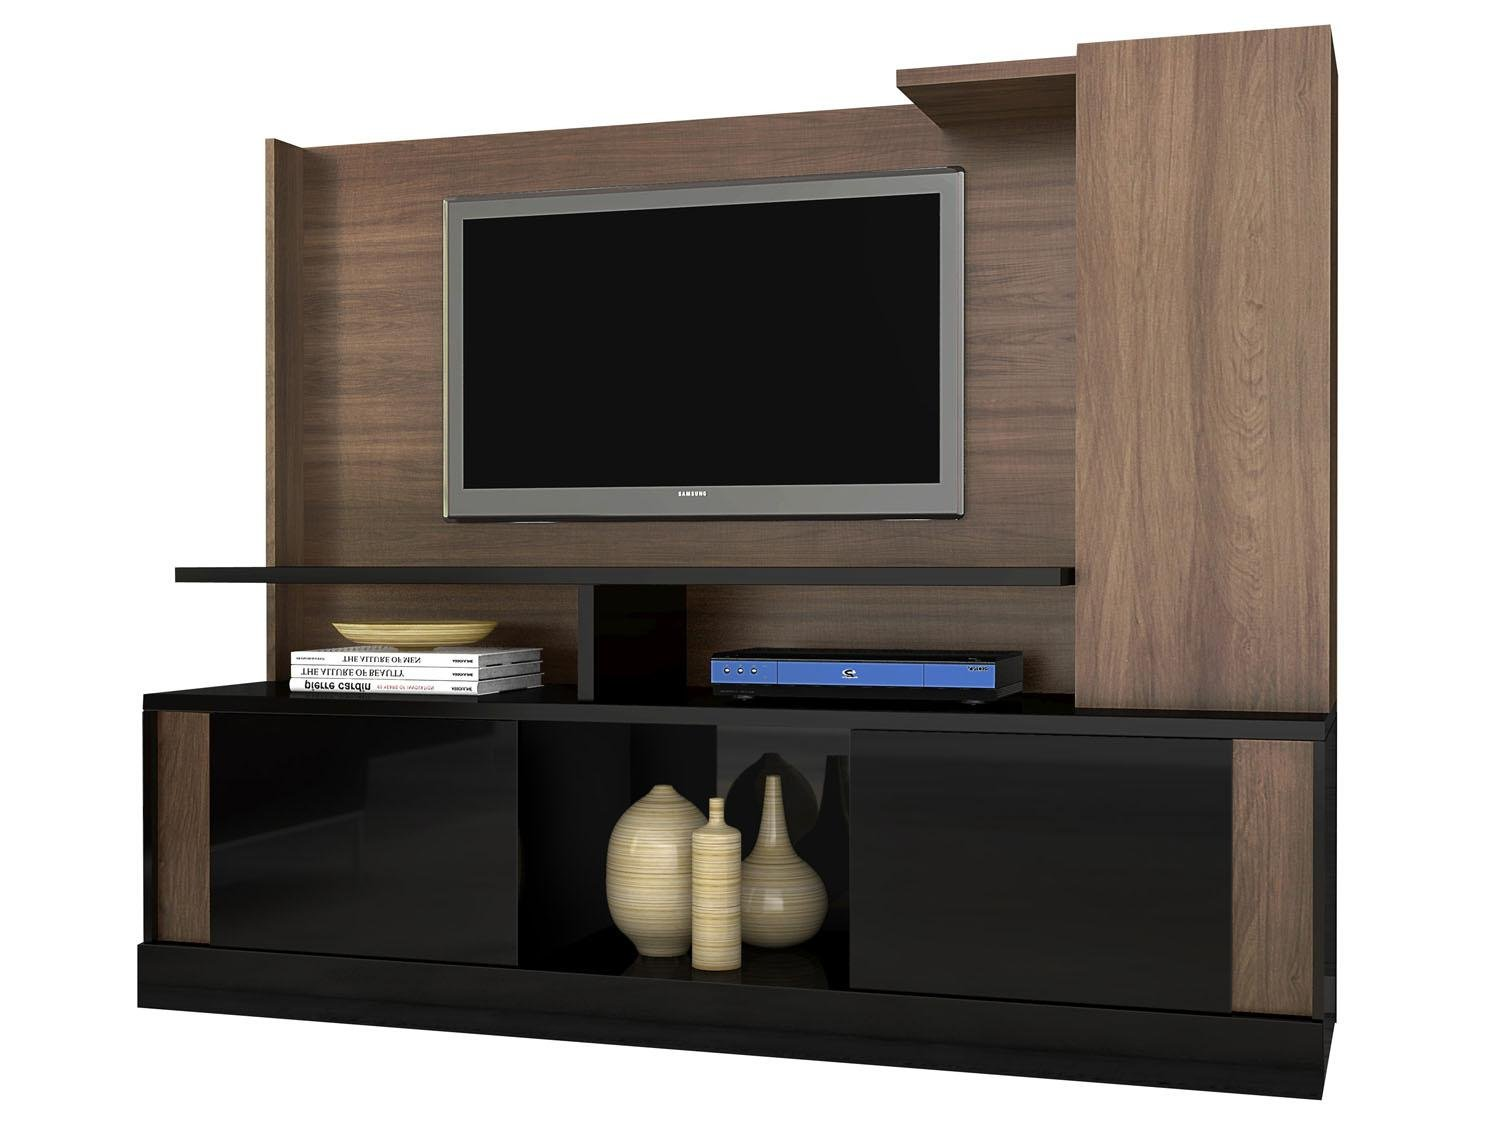 Estante para home theater em laca branca e wengue - Estantes para pared ...